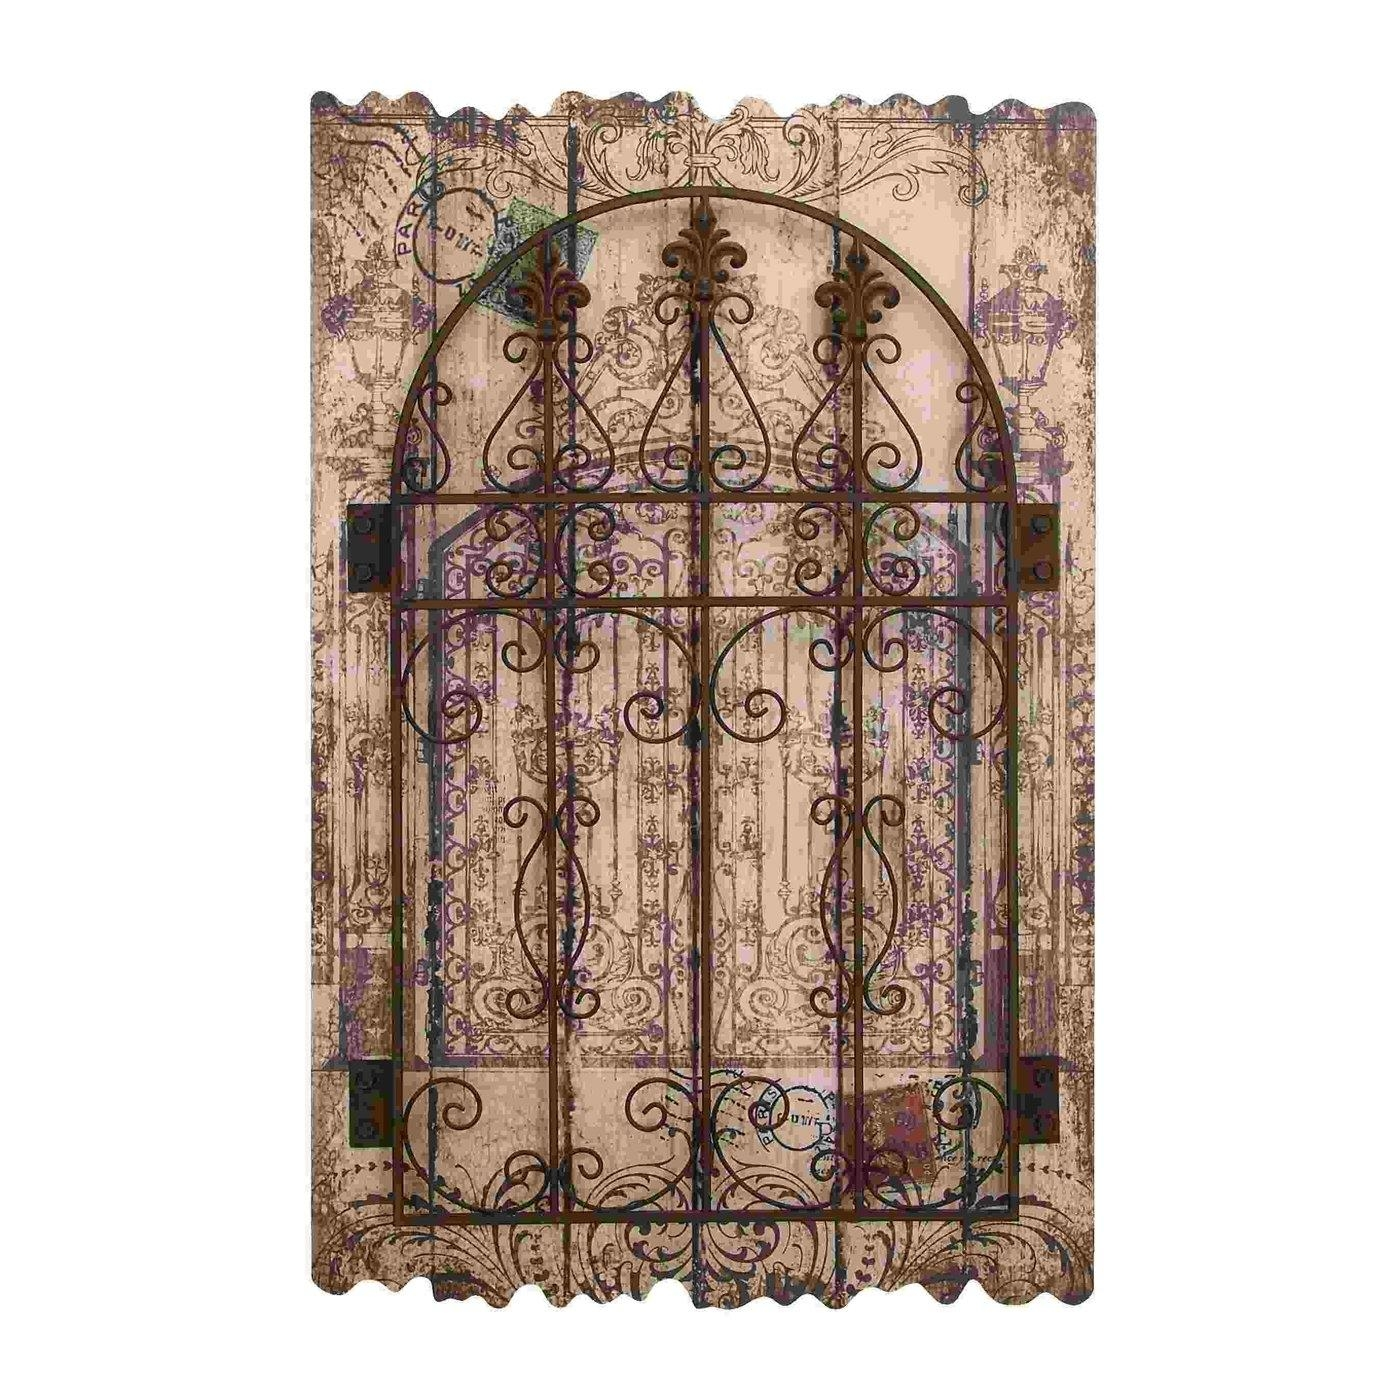 Wall Art Designs: Metal And Wood Wall Art Tuscan Carved Garden Pertaining To Metal Gate Wall Art (Image 17 of 20)